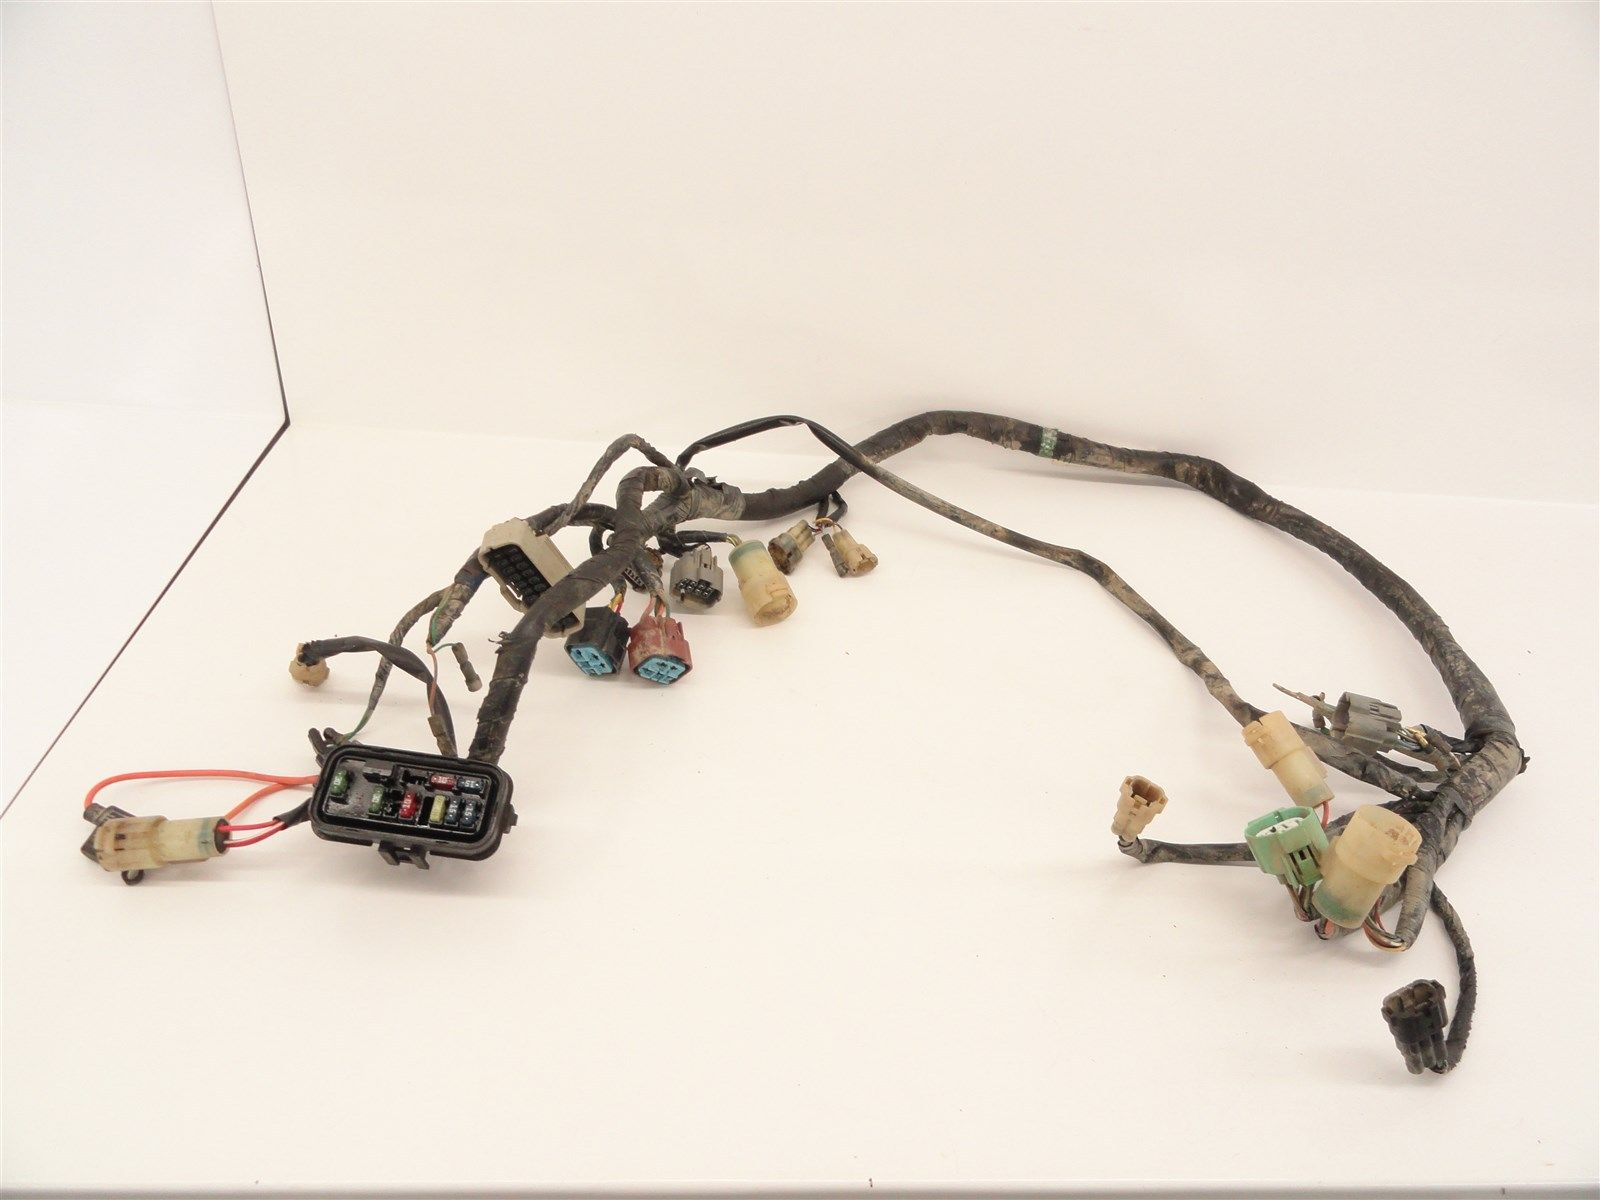 00 honda trx 350 te rancher 2wd used main wiring harness. Black Bedroom Furniture Sets. Home Design Ideas